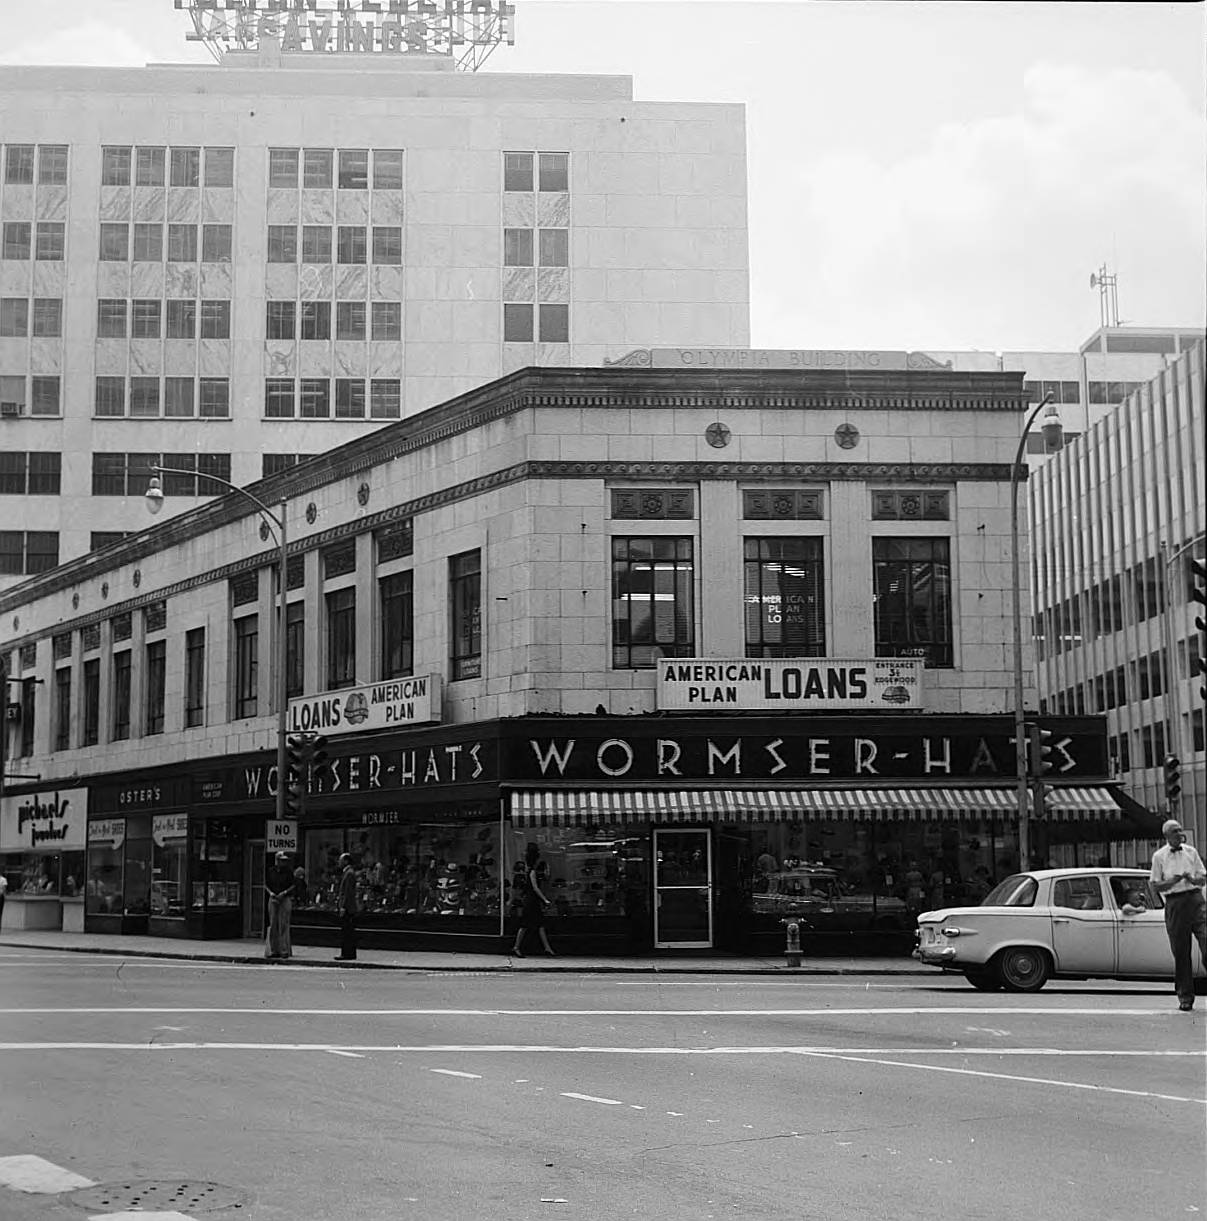 View of the Olympia Building with Wormser-Hats on the first floor